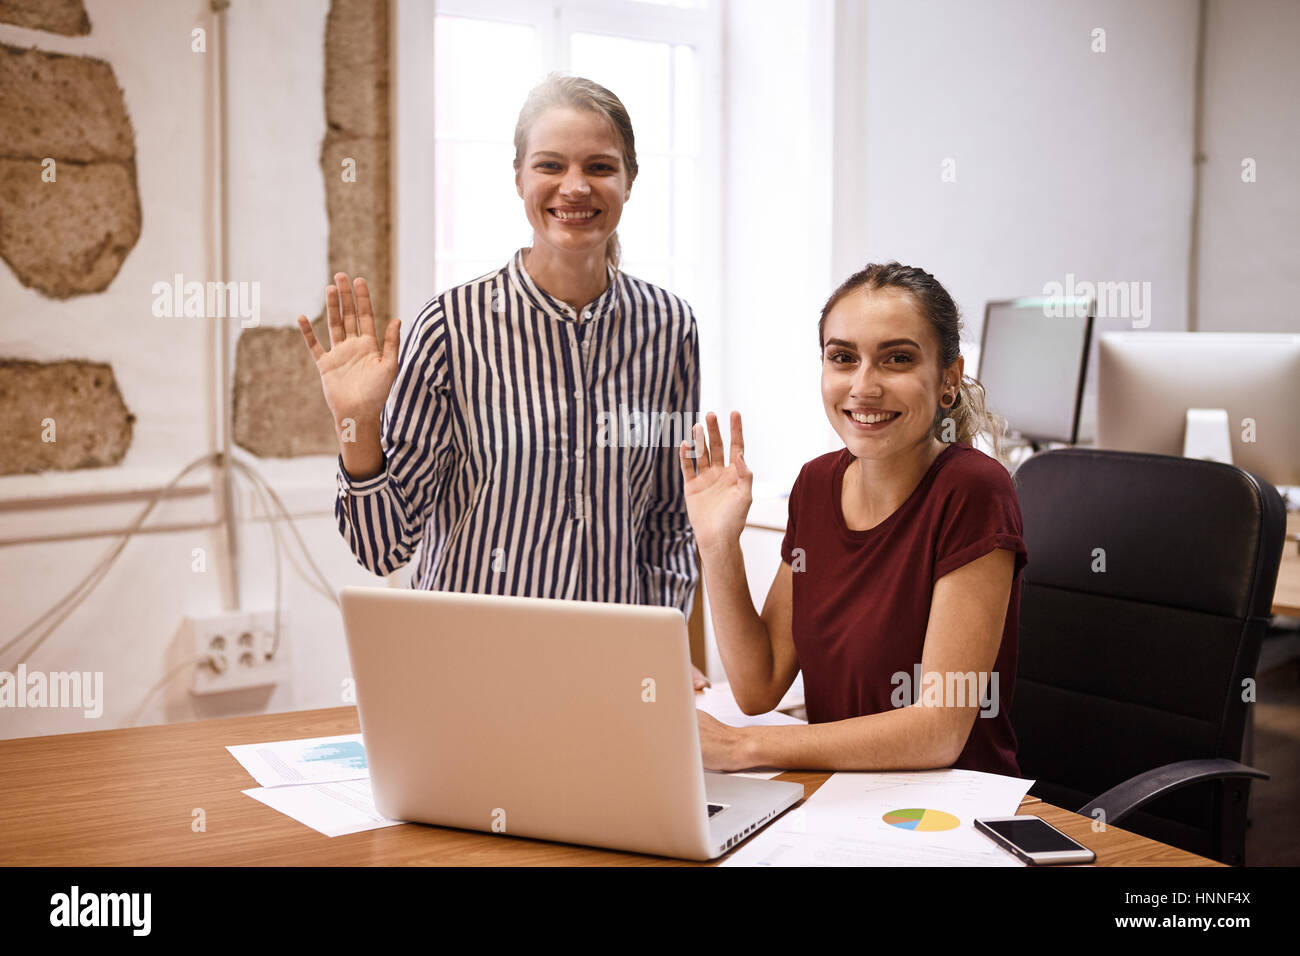 Two young business women smiling big toothy smiles and waving at the camera while sitting at a desk with a laptop - Stock Image